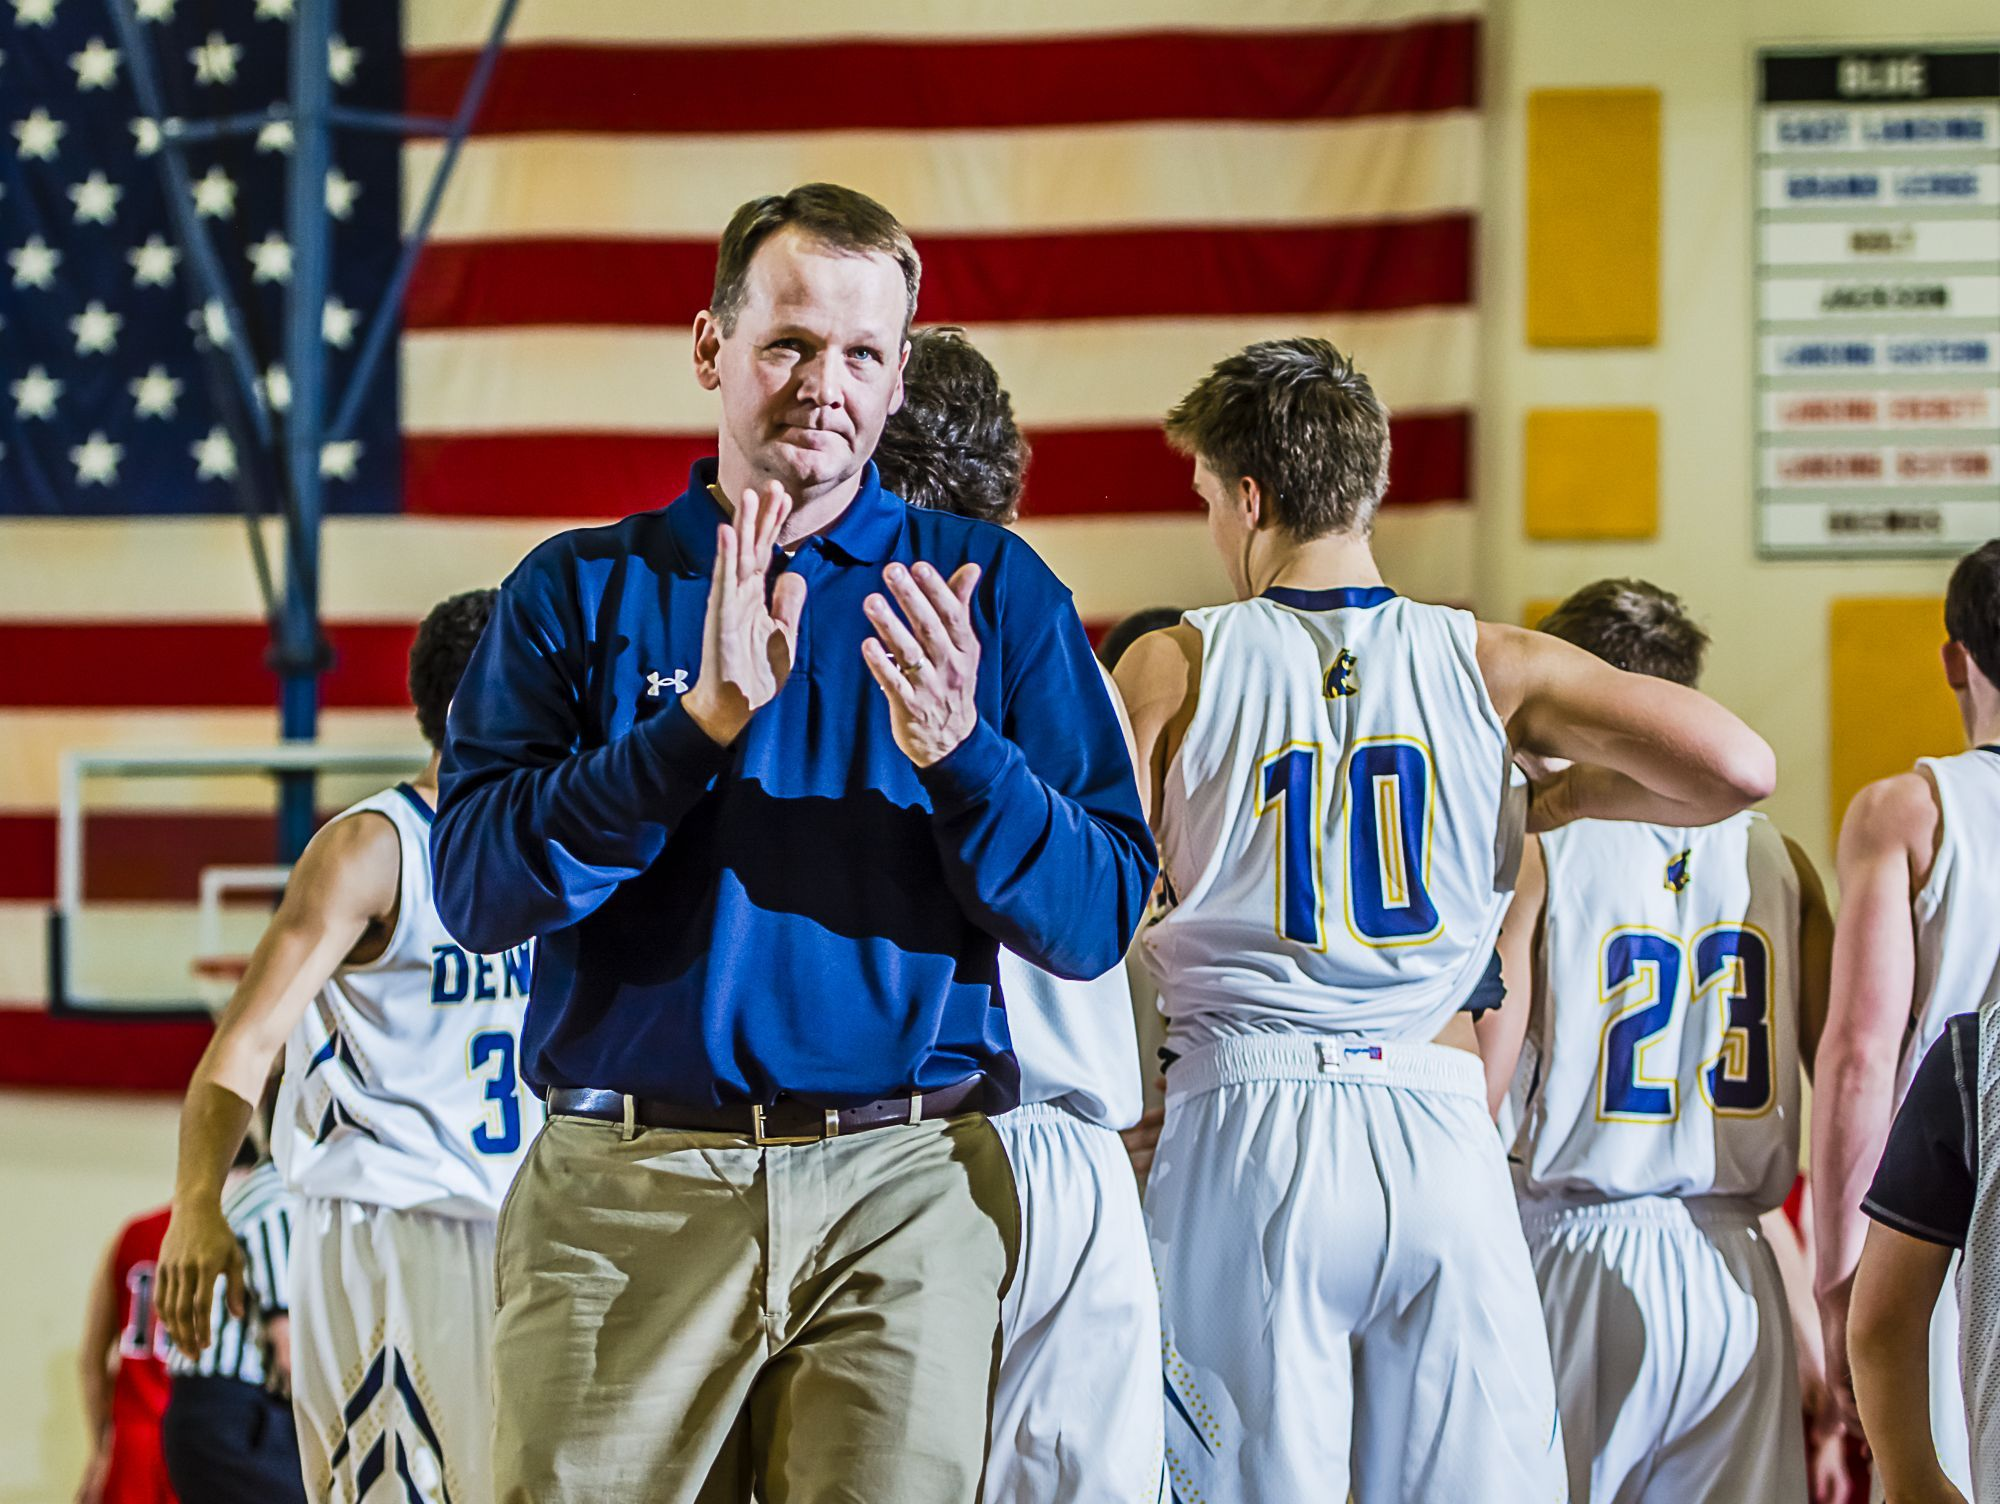 Ron Marlan has stepped down as the coach of the DeWitt boys basketball program after 14 seasons to spend more time with family.